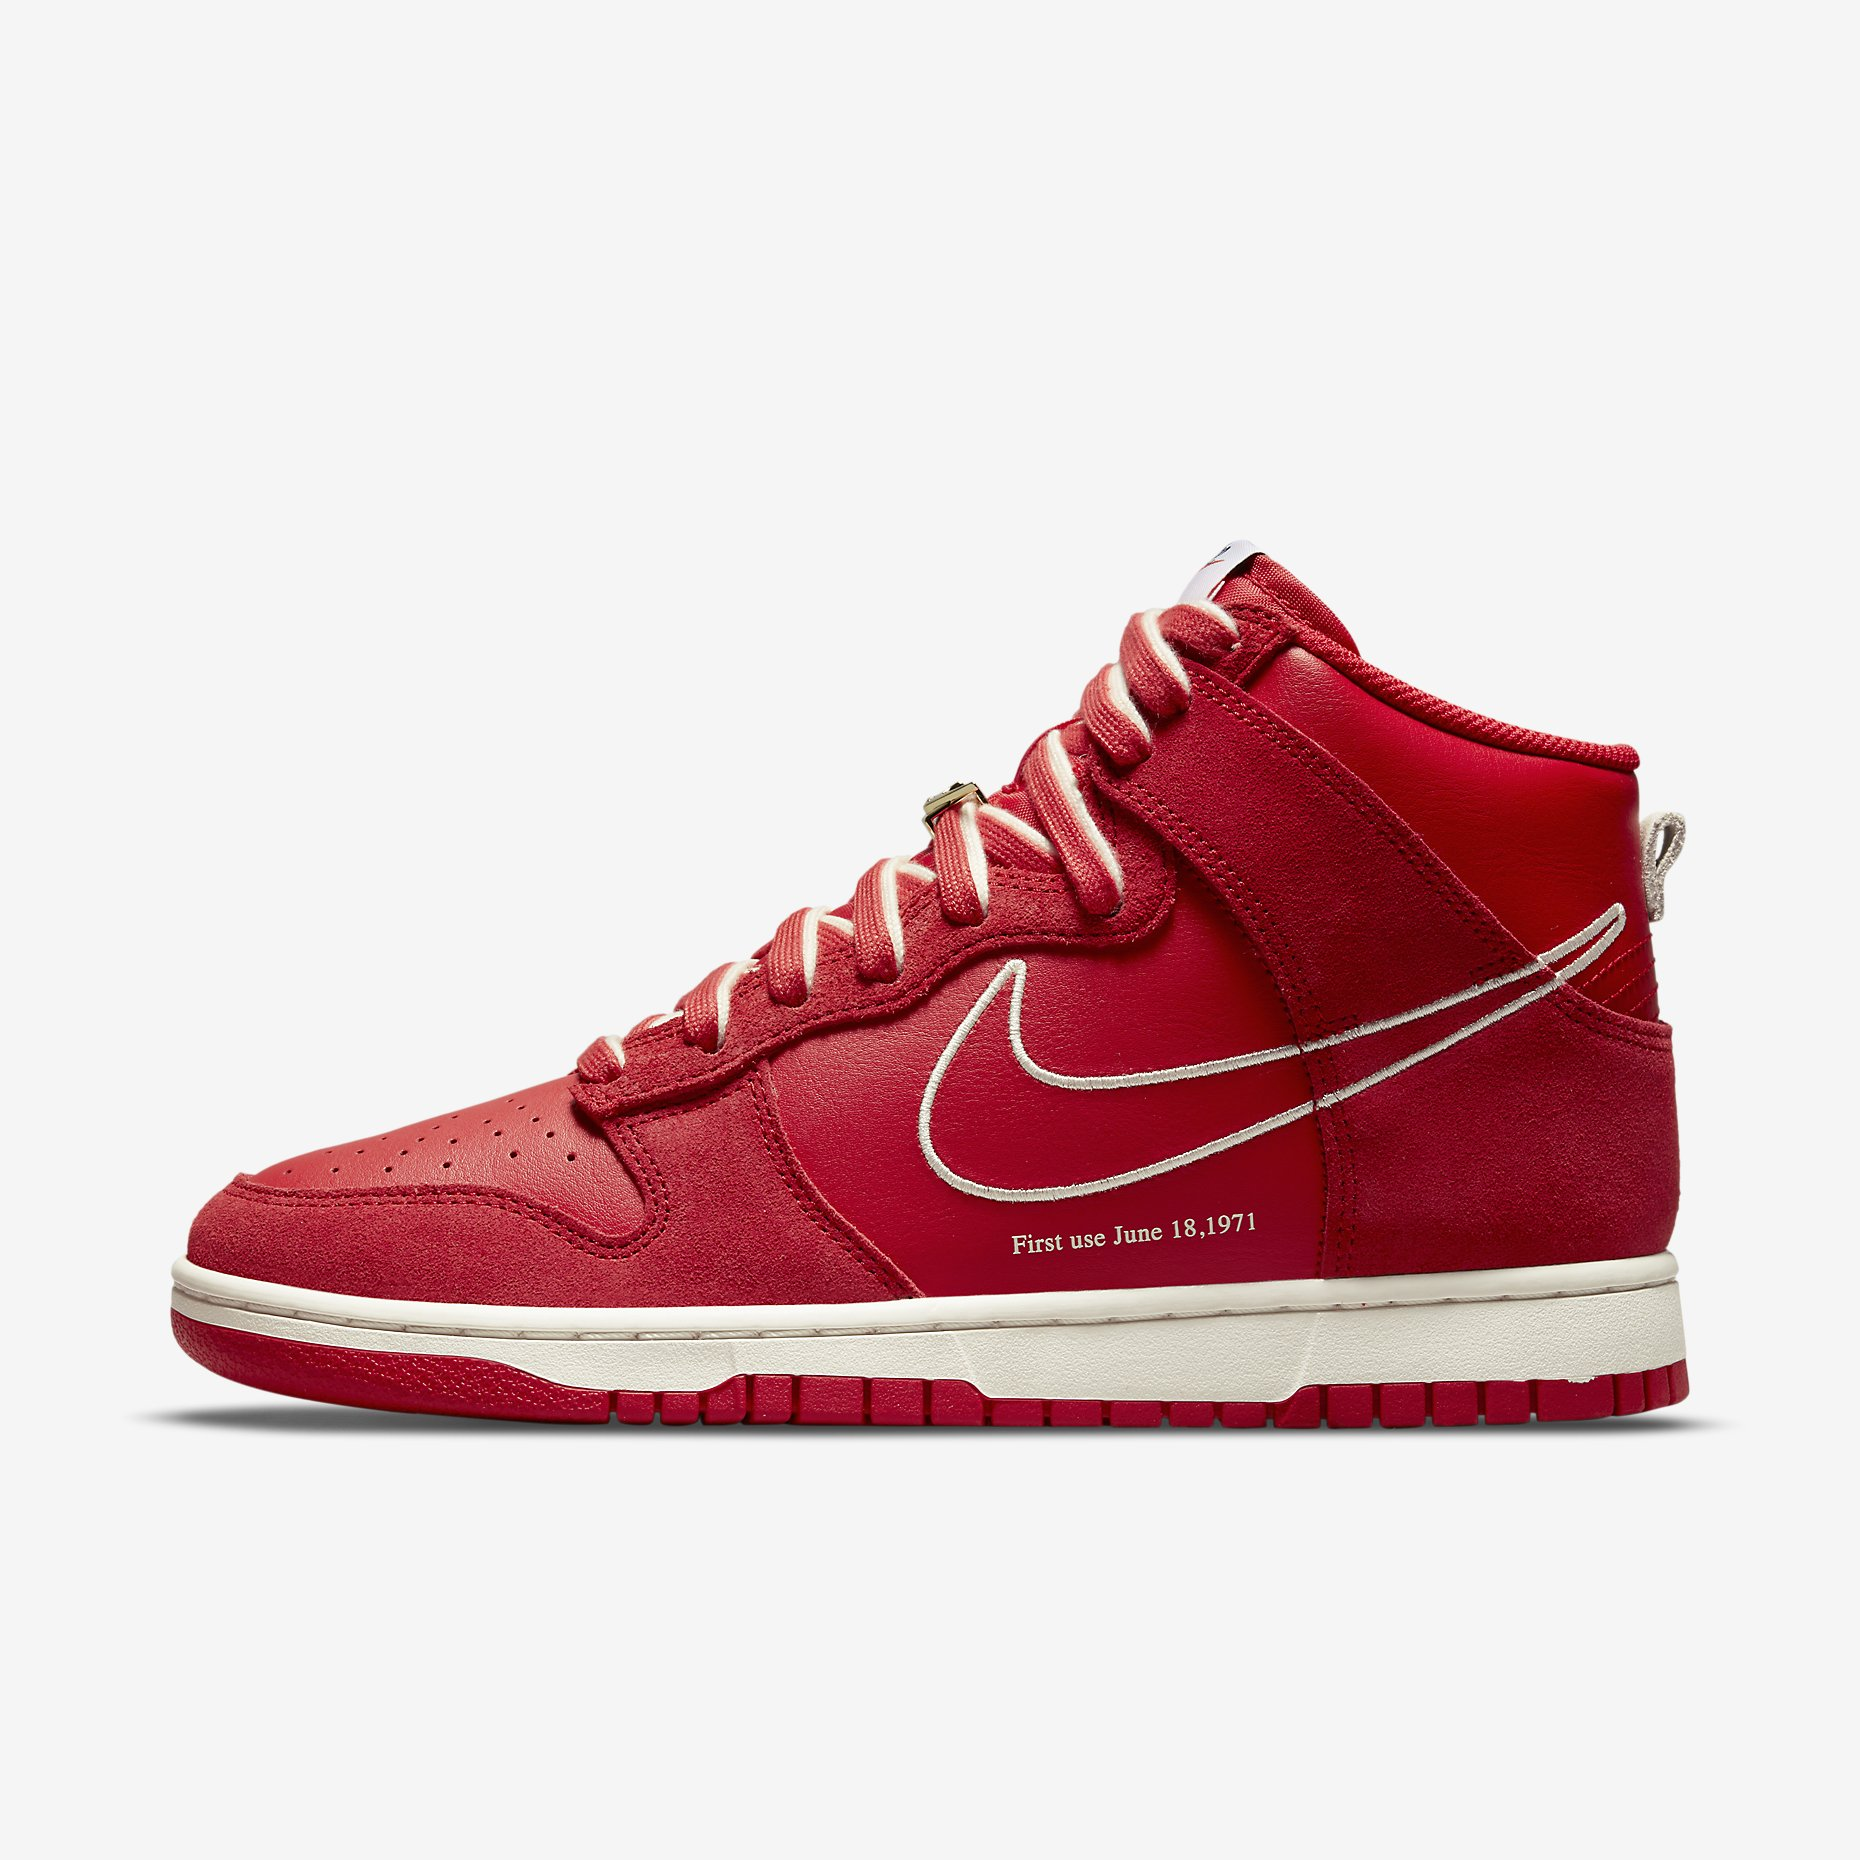 Nike Dunk High SE 'University Red' - First use}